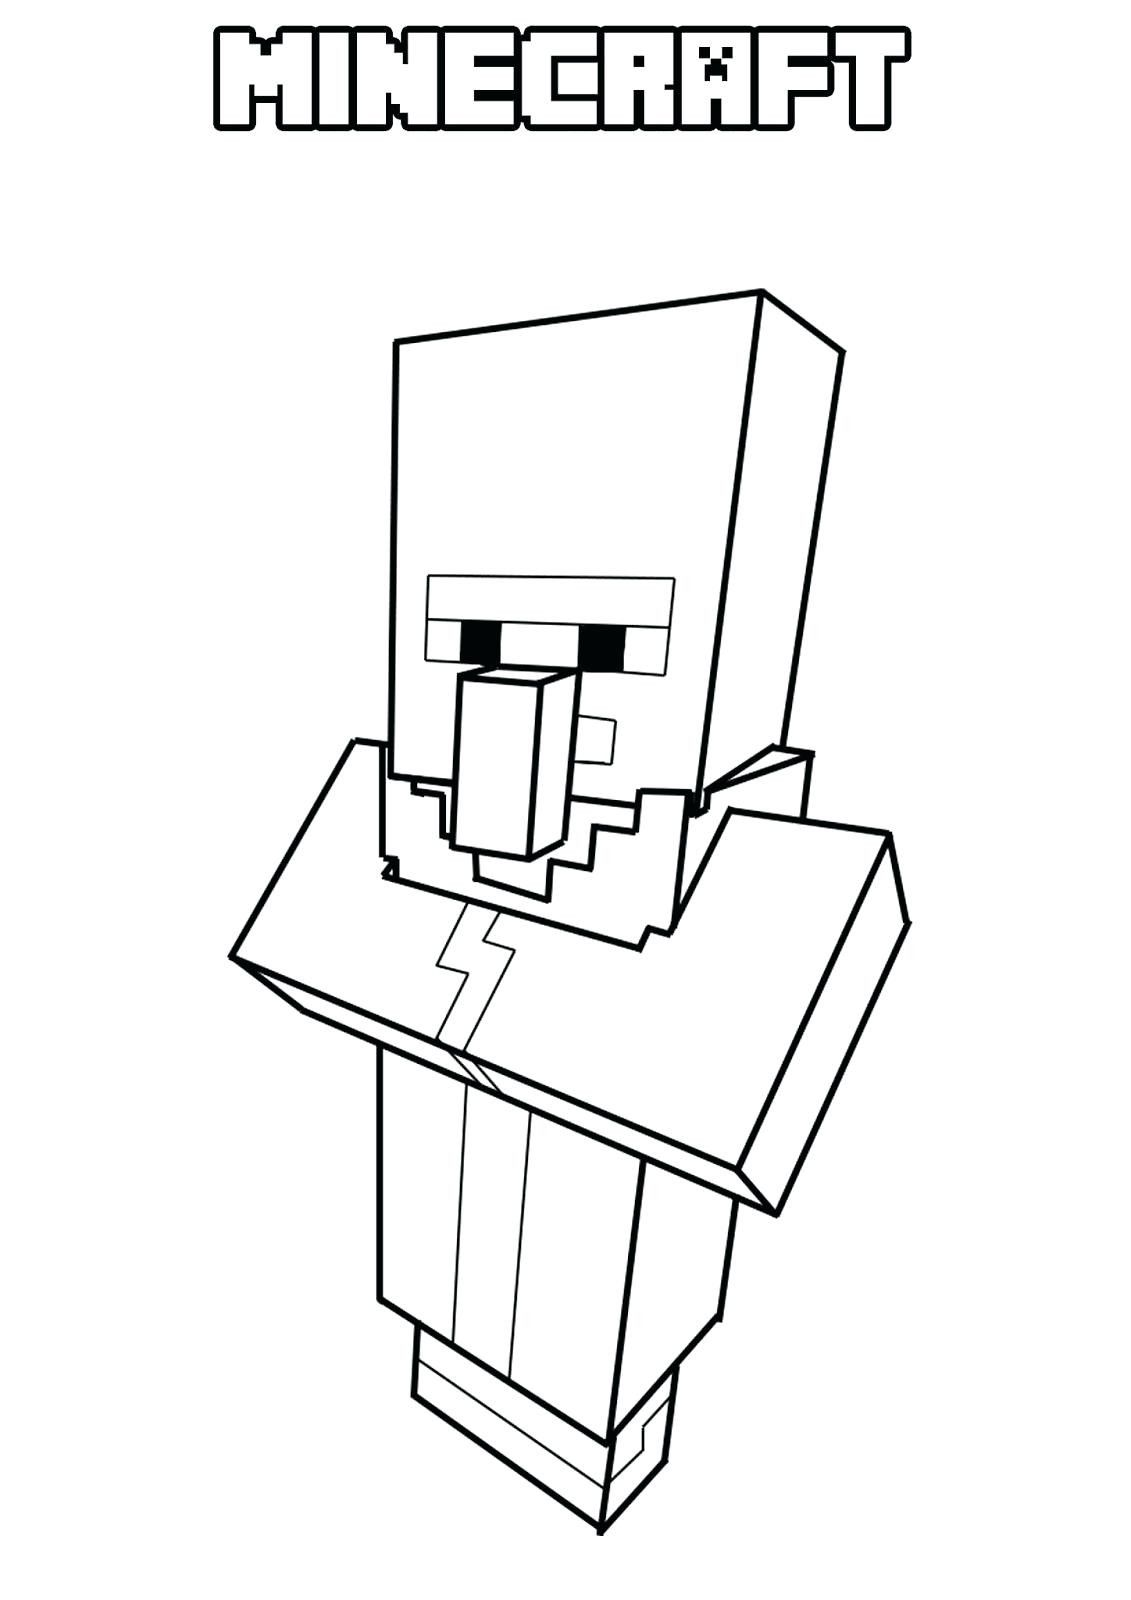 Minecraft Villager Coloring Page Youngandtae Com Minecraft Coloring Pages Easy Coloring Pages Coloring Pages